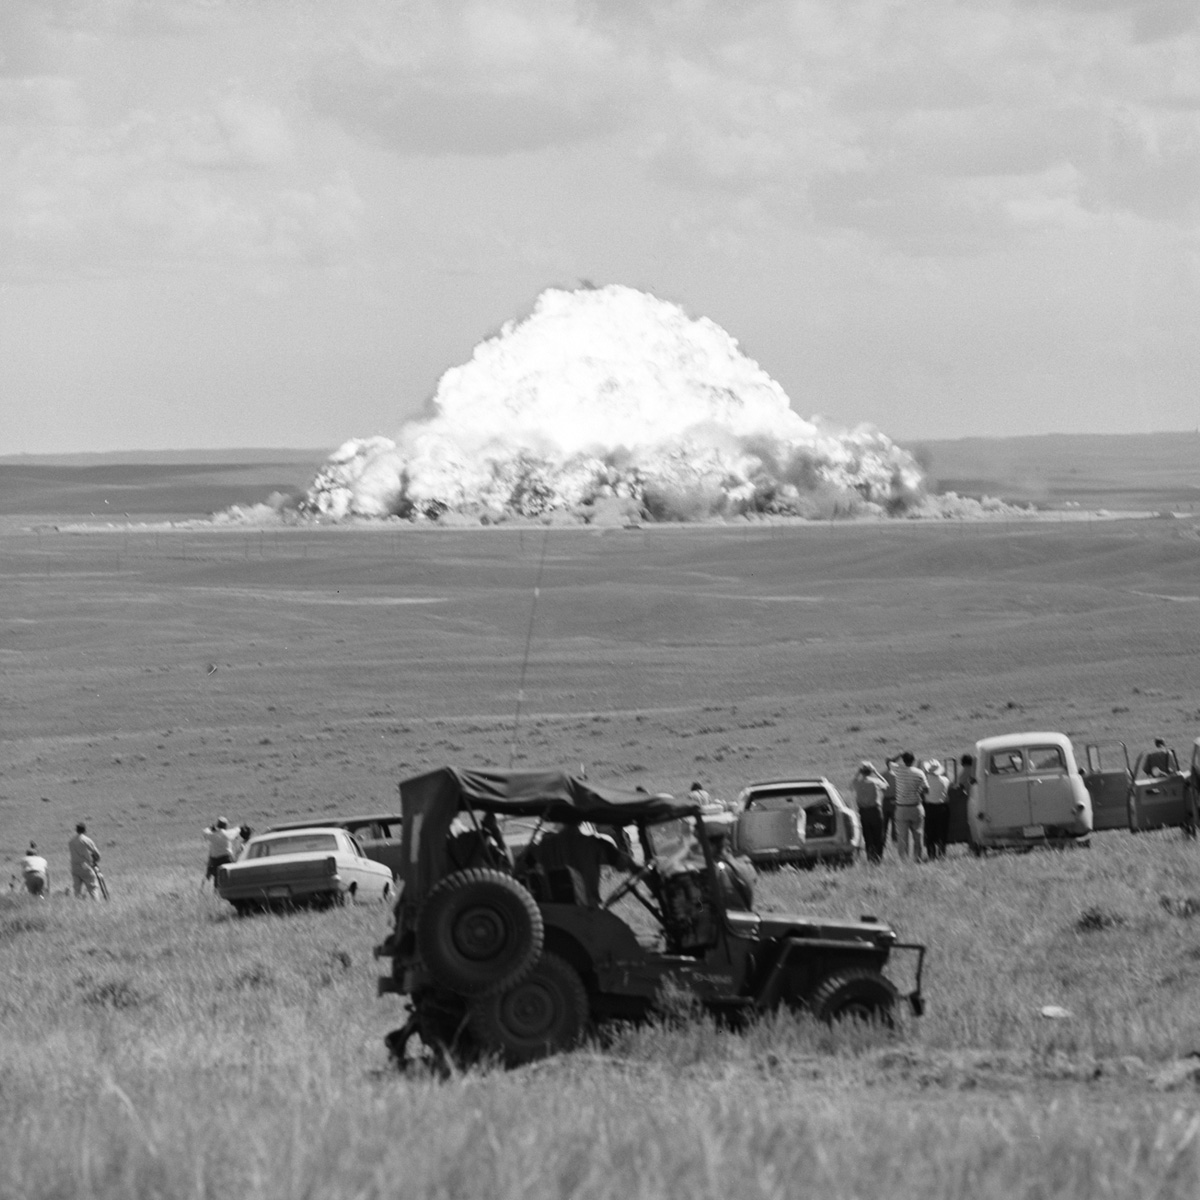 Two of the largest explosives trials conducted on the EPG were carried out in partnership with a number of allied countries in the 1960s.  Operation Snowball and Operation Prairie Flat were both undertaken to provide technical information relatable to the detonation of nuclear weapons by creating an explosion using 500 tonnes of TNT. Photo: DRDC.